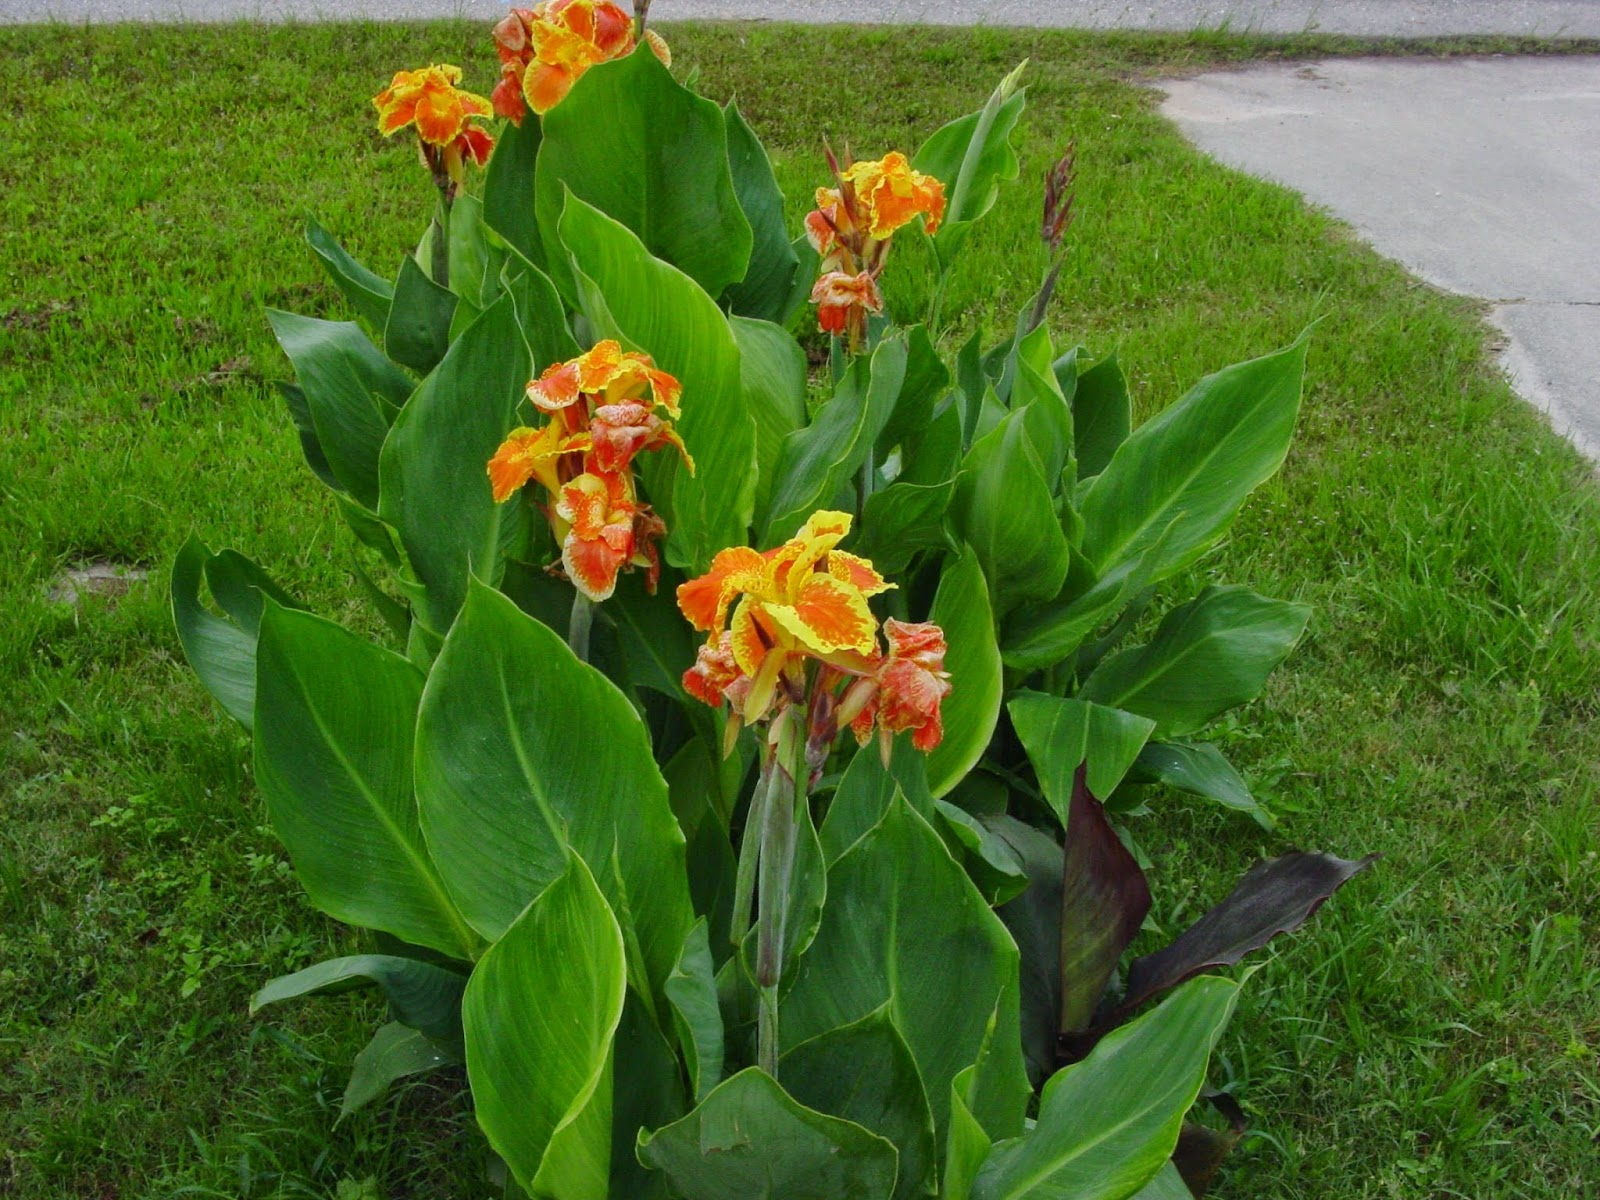 University of floridaifas charlotte county extension canna i grow it perhaps one of the most popular and successful perennial flowers adapted to our hot and wet florida climate are the cannas they not only have large flowers mightylinksfo